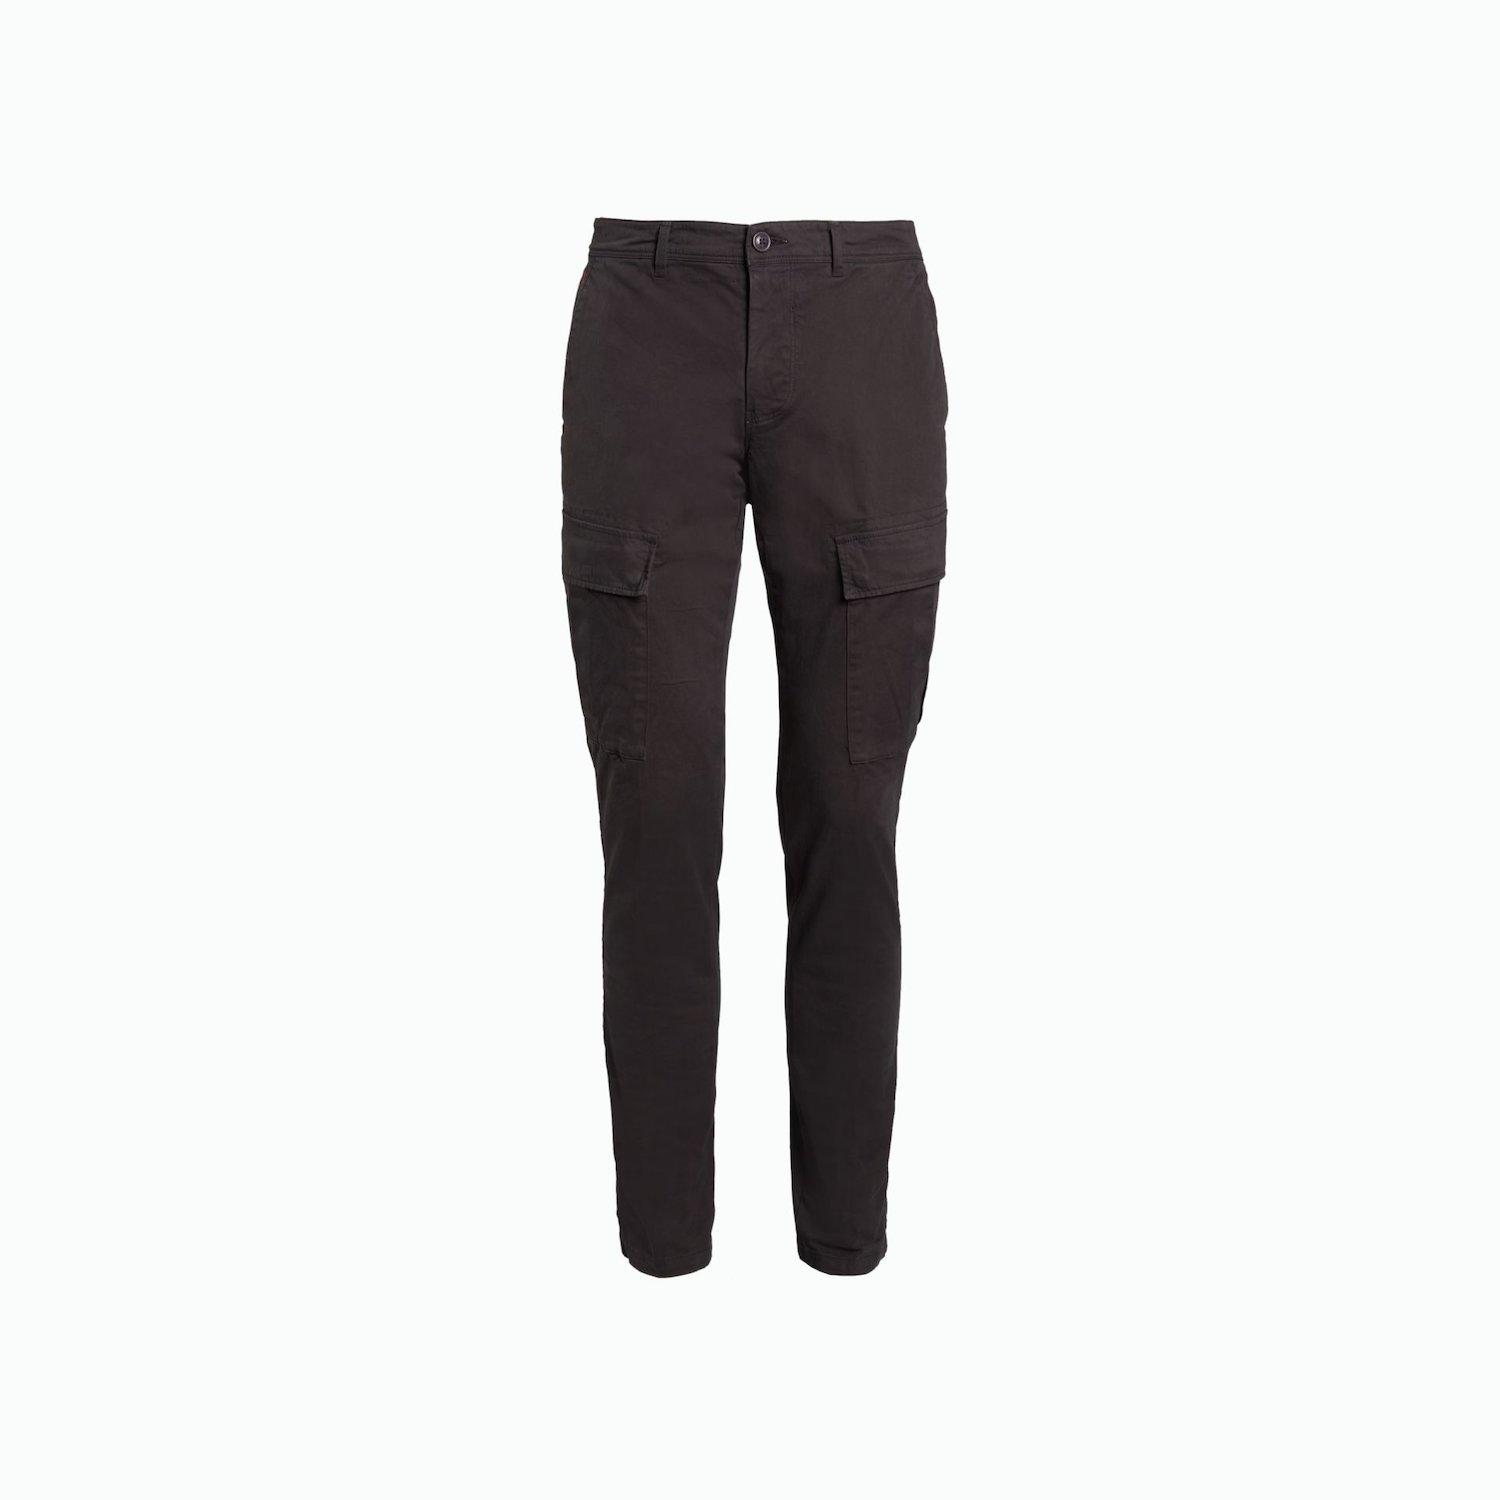 B70 Trousers - Anthracite